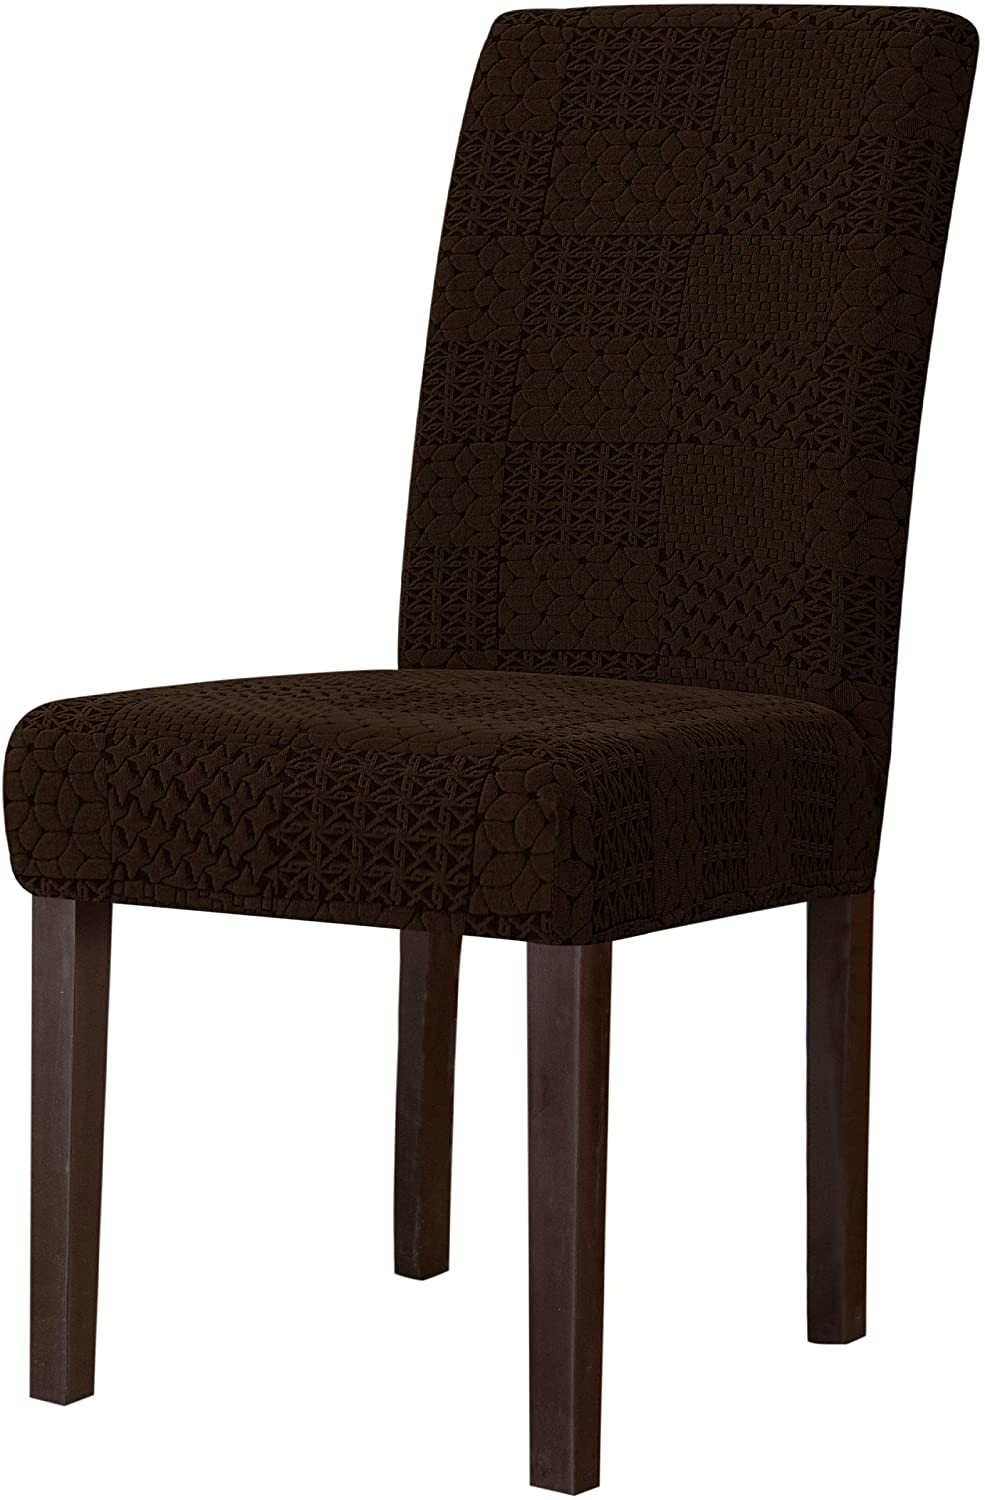 subrtex Dining Room Chair Slipcovers Various Jacquard Chair Covers Stretch Chair Covers for Dining Room Washable Parsons Seat Covers (Pack of 4, Chocolate)